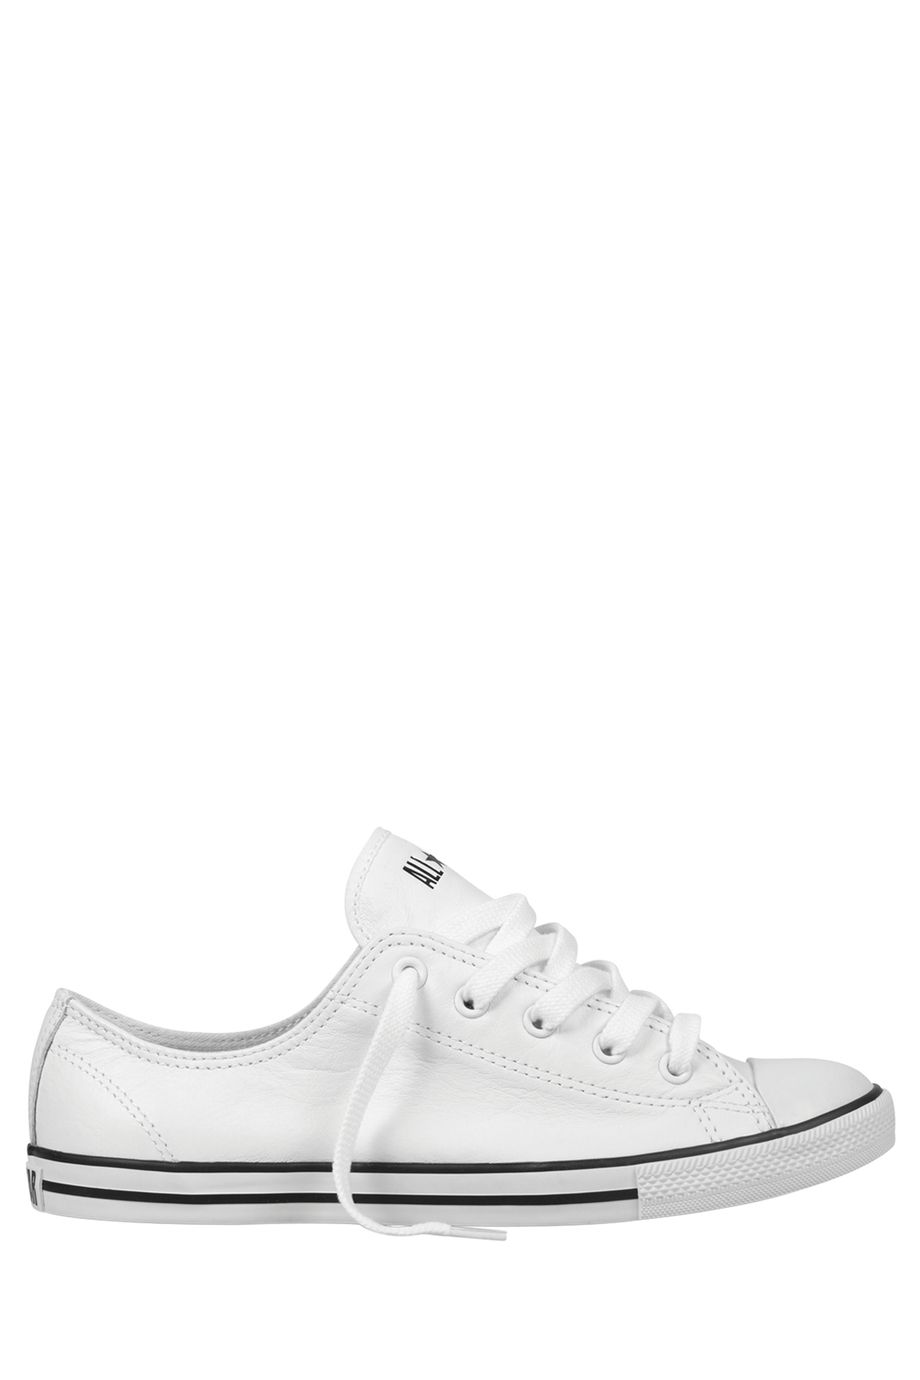 CONVERSE Chuck Taylor All Star Dainty Leather Low Top White Sneaker ... 09bb8e1ed